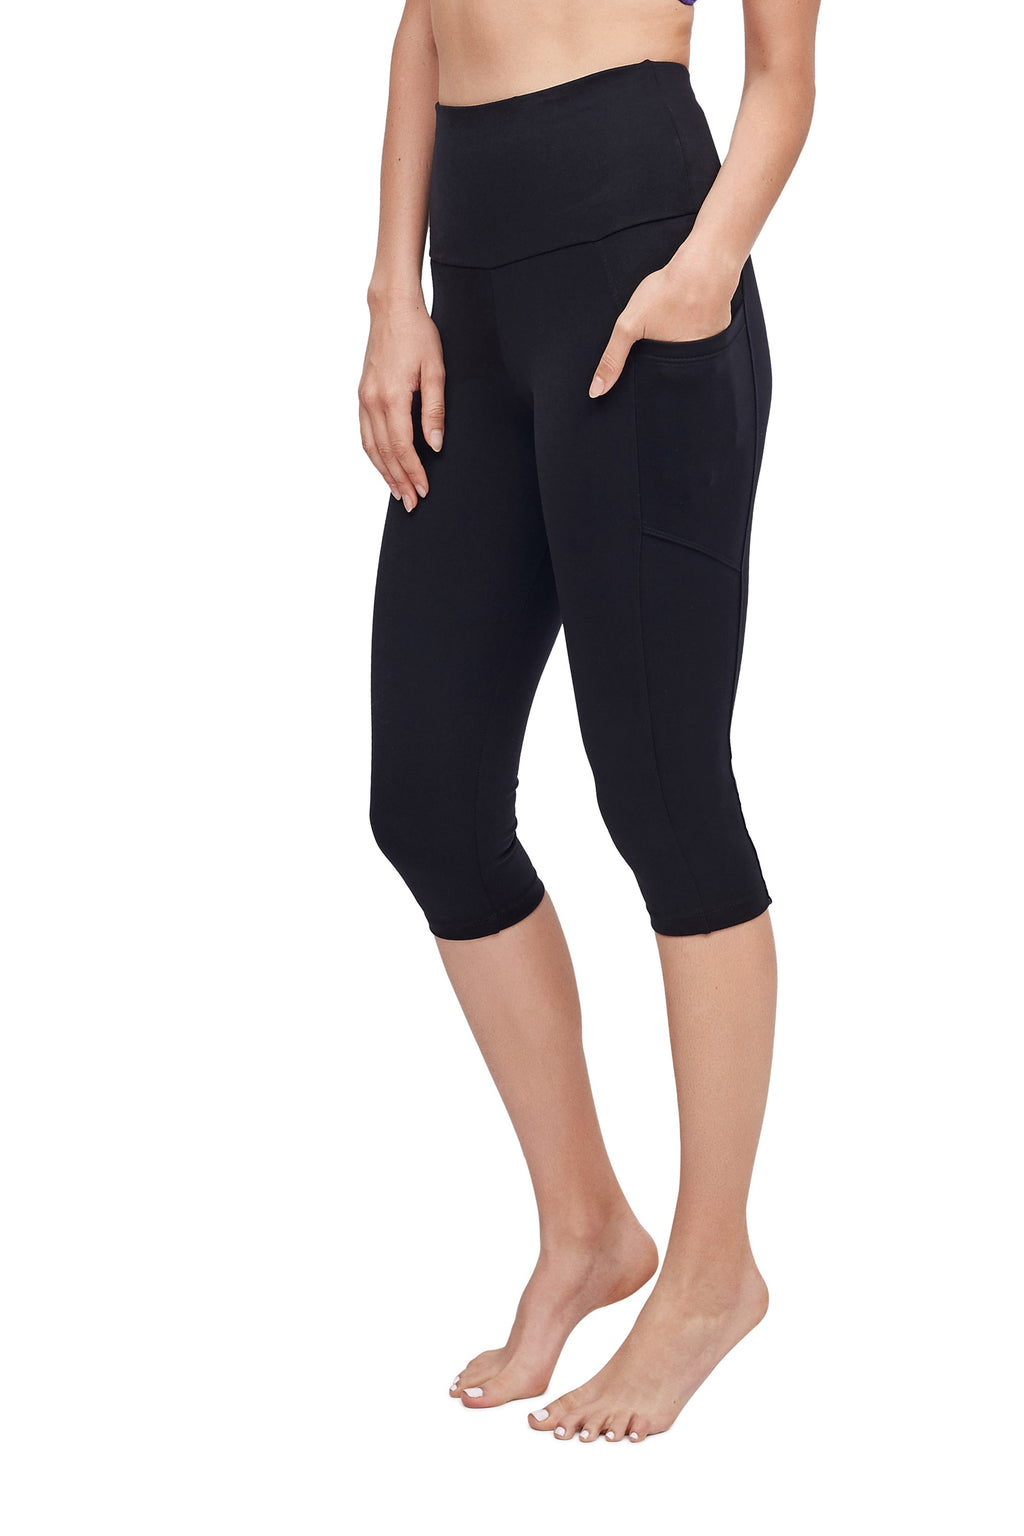 High-Waisted Supplex Under Knee with Pockets